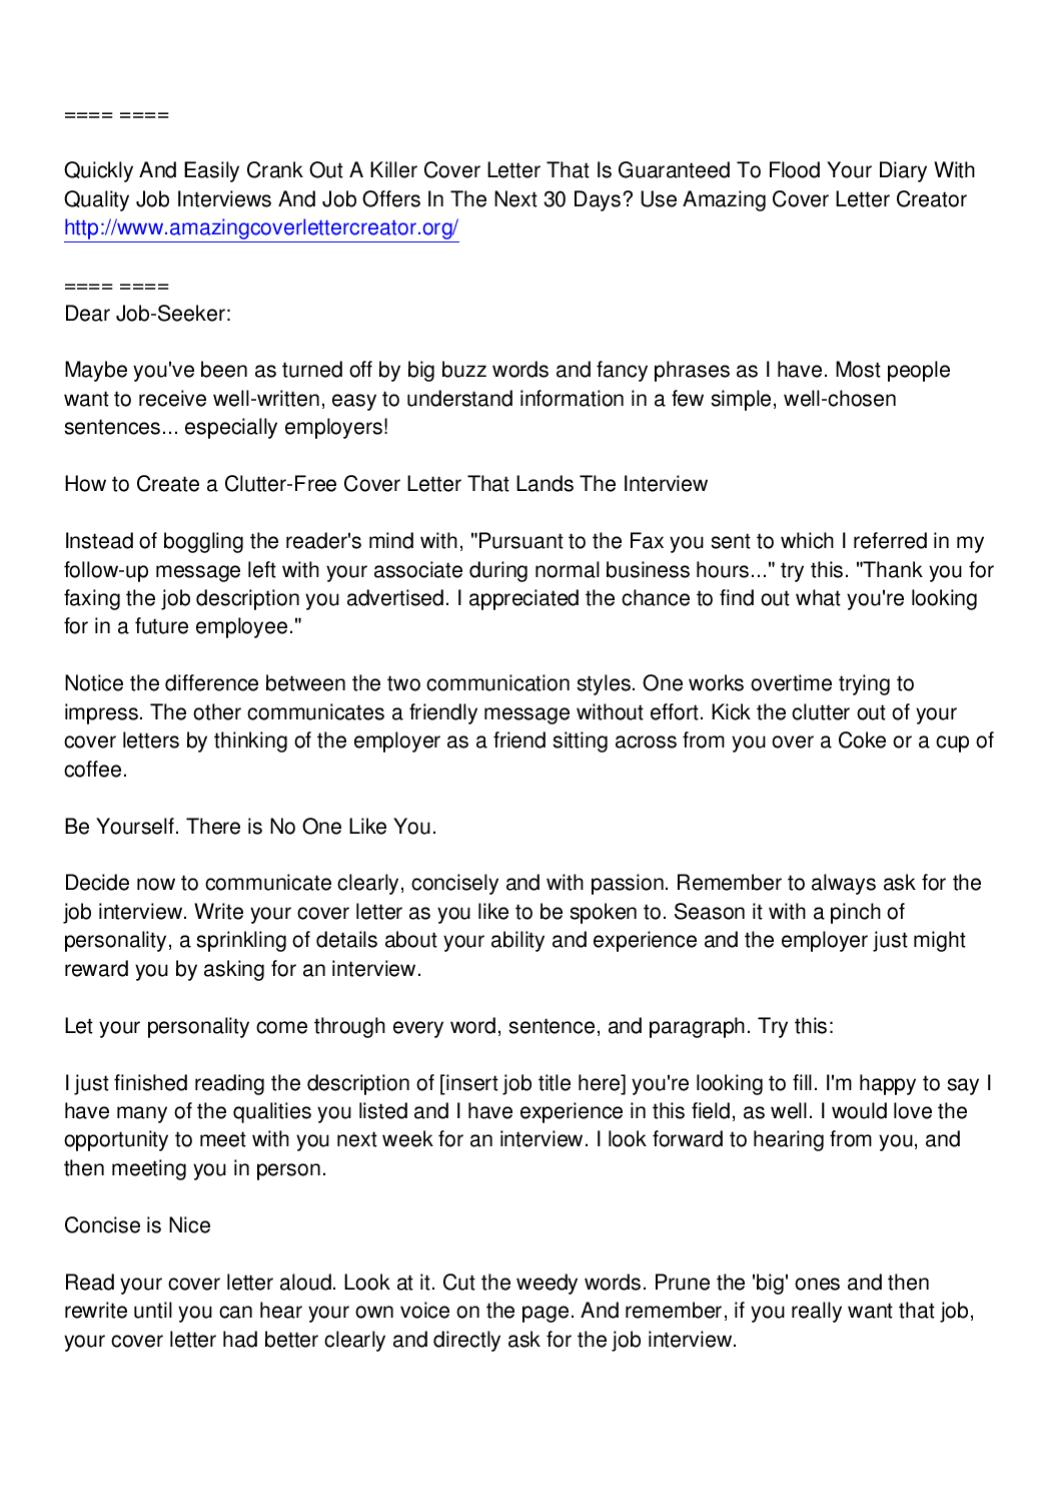 amazing cover letter creator jimmy sweeney by arthur smith ...